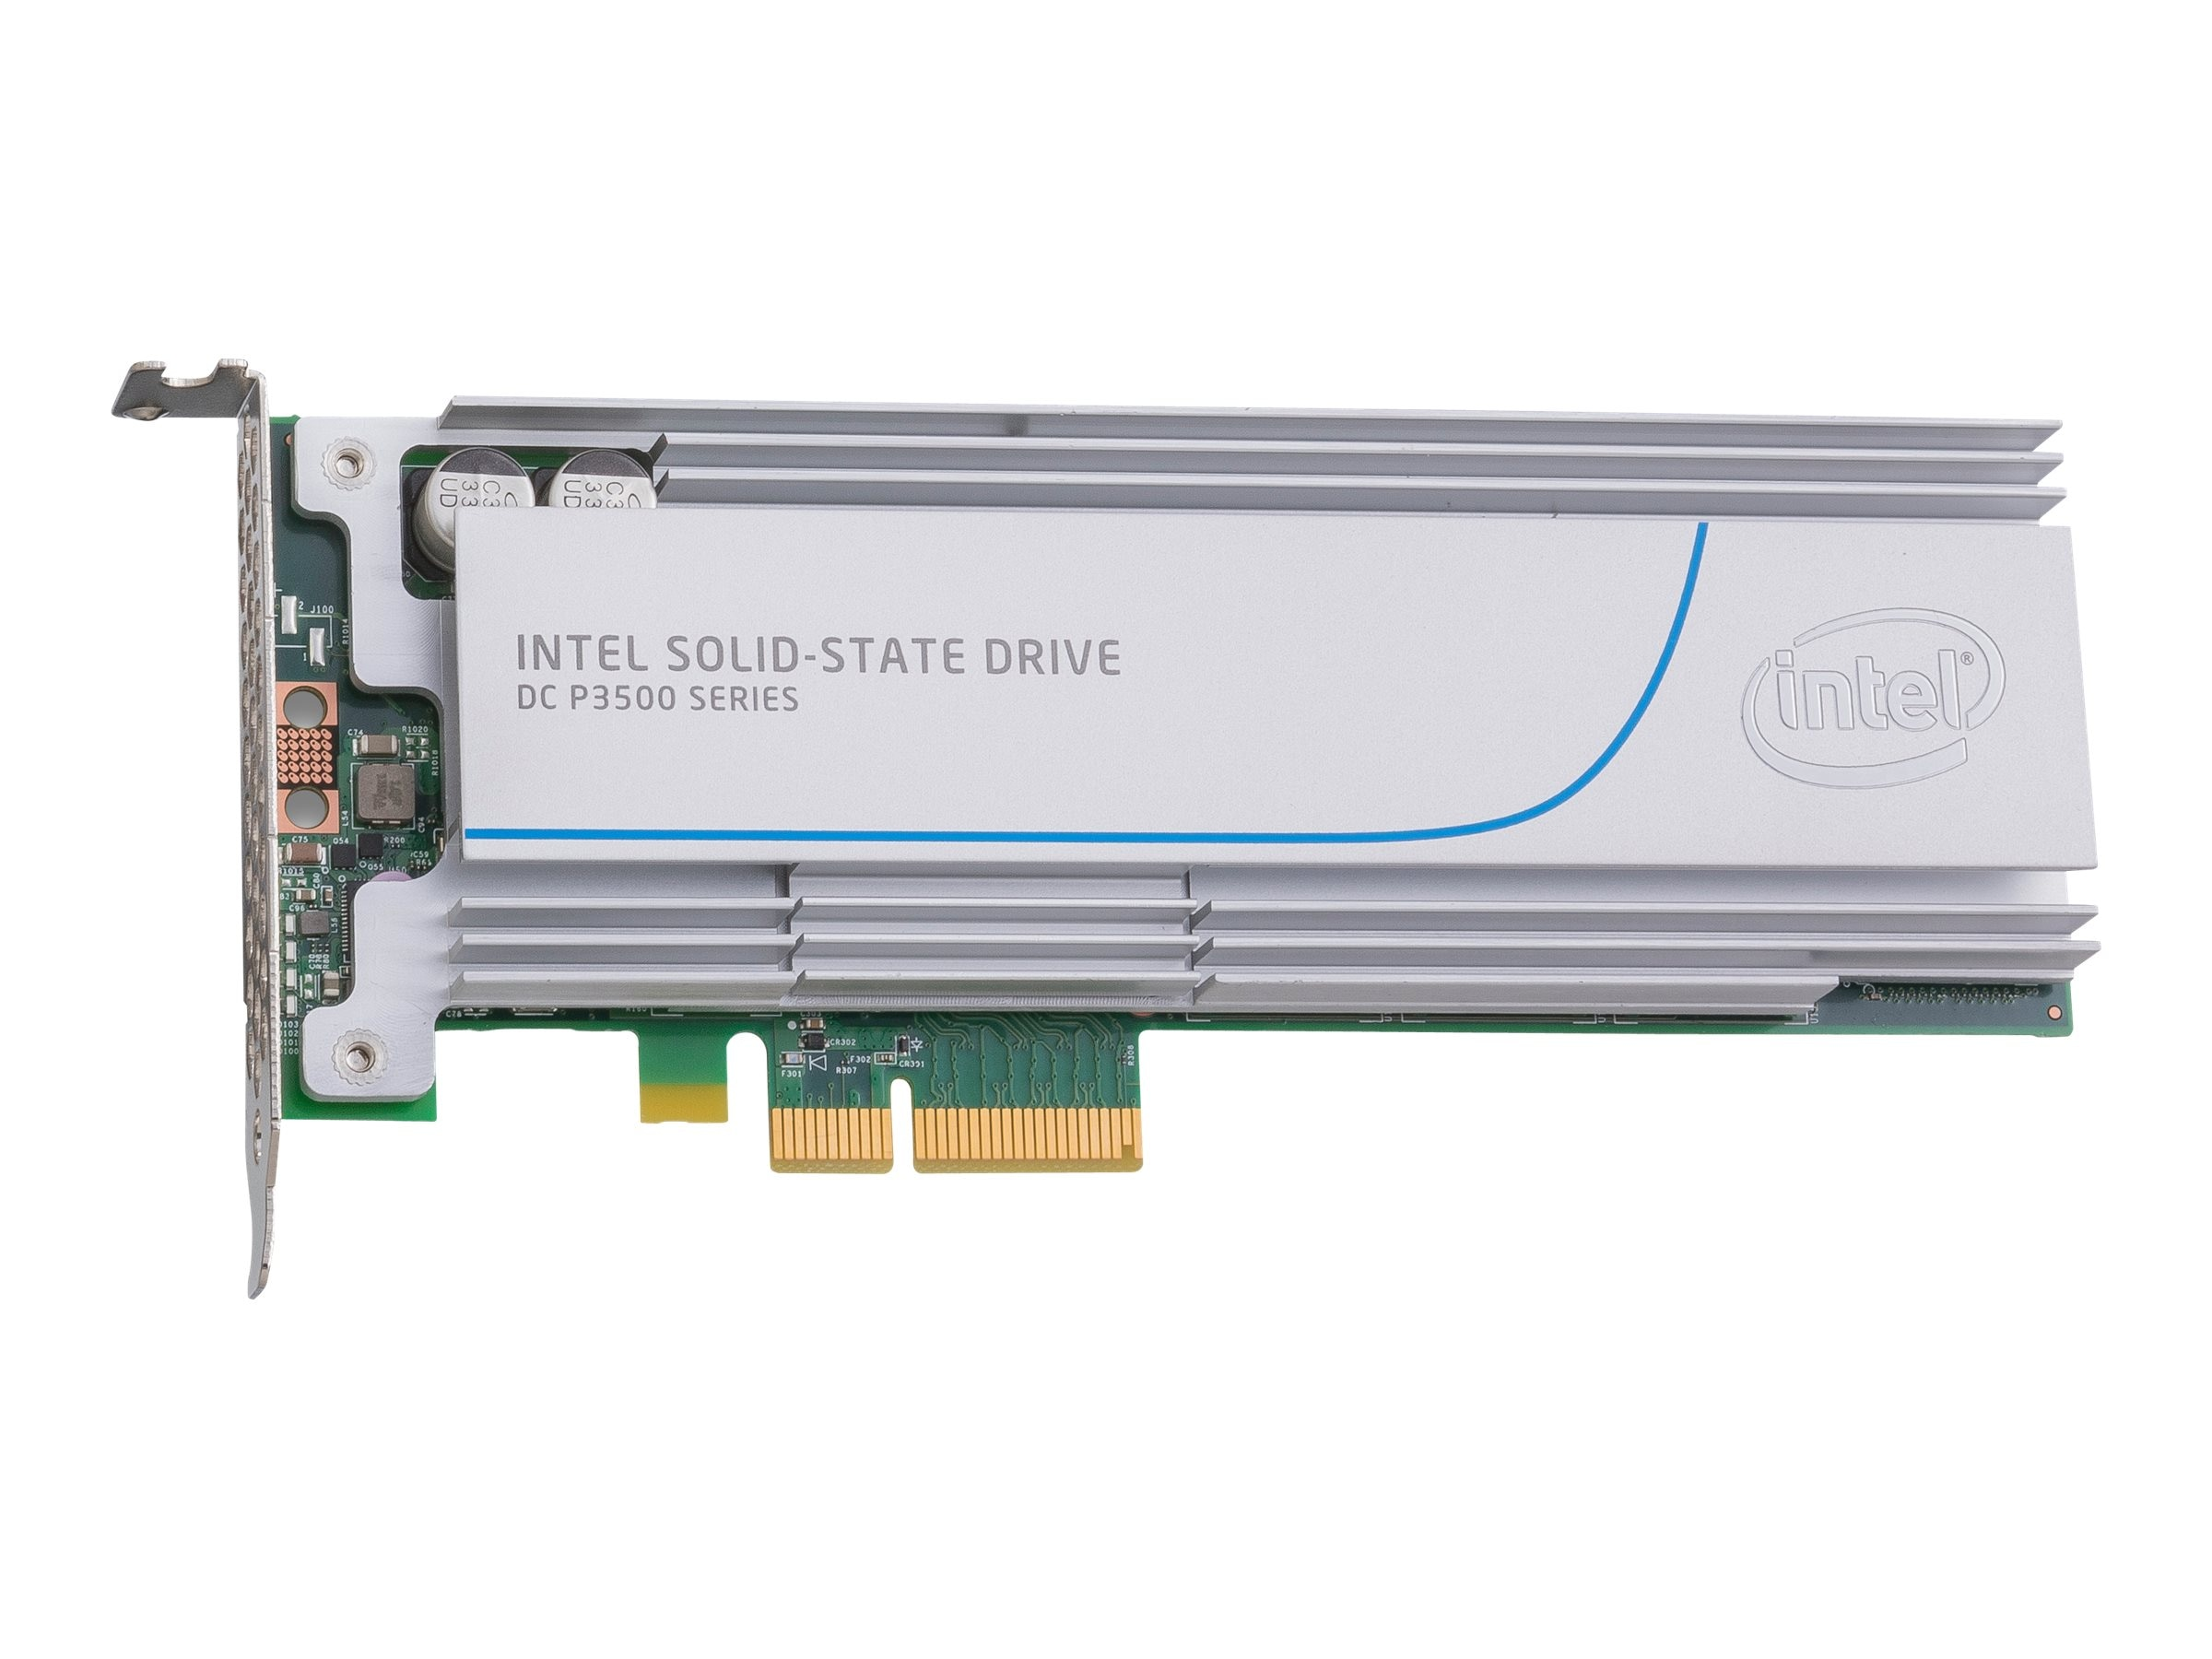 Intel 400GB DC P3500 Series Half Height Solid State Drive, SSDPEDMX400G401, 20137848, Solid State Drives - Internal